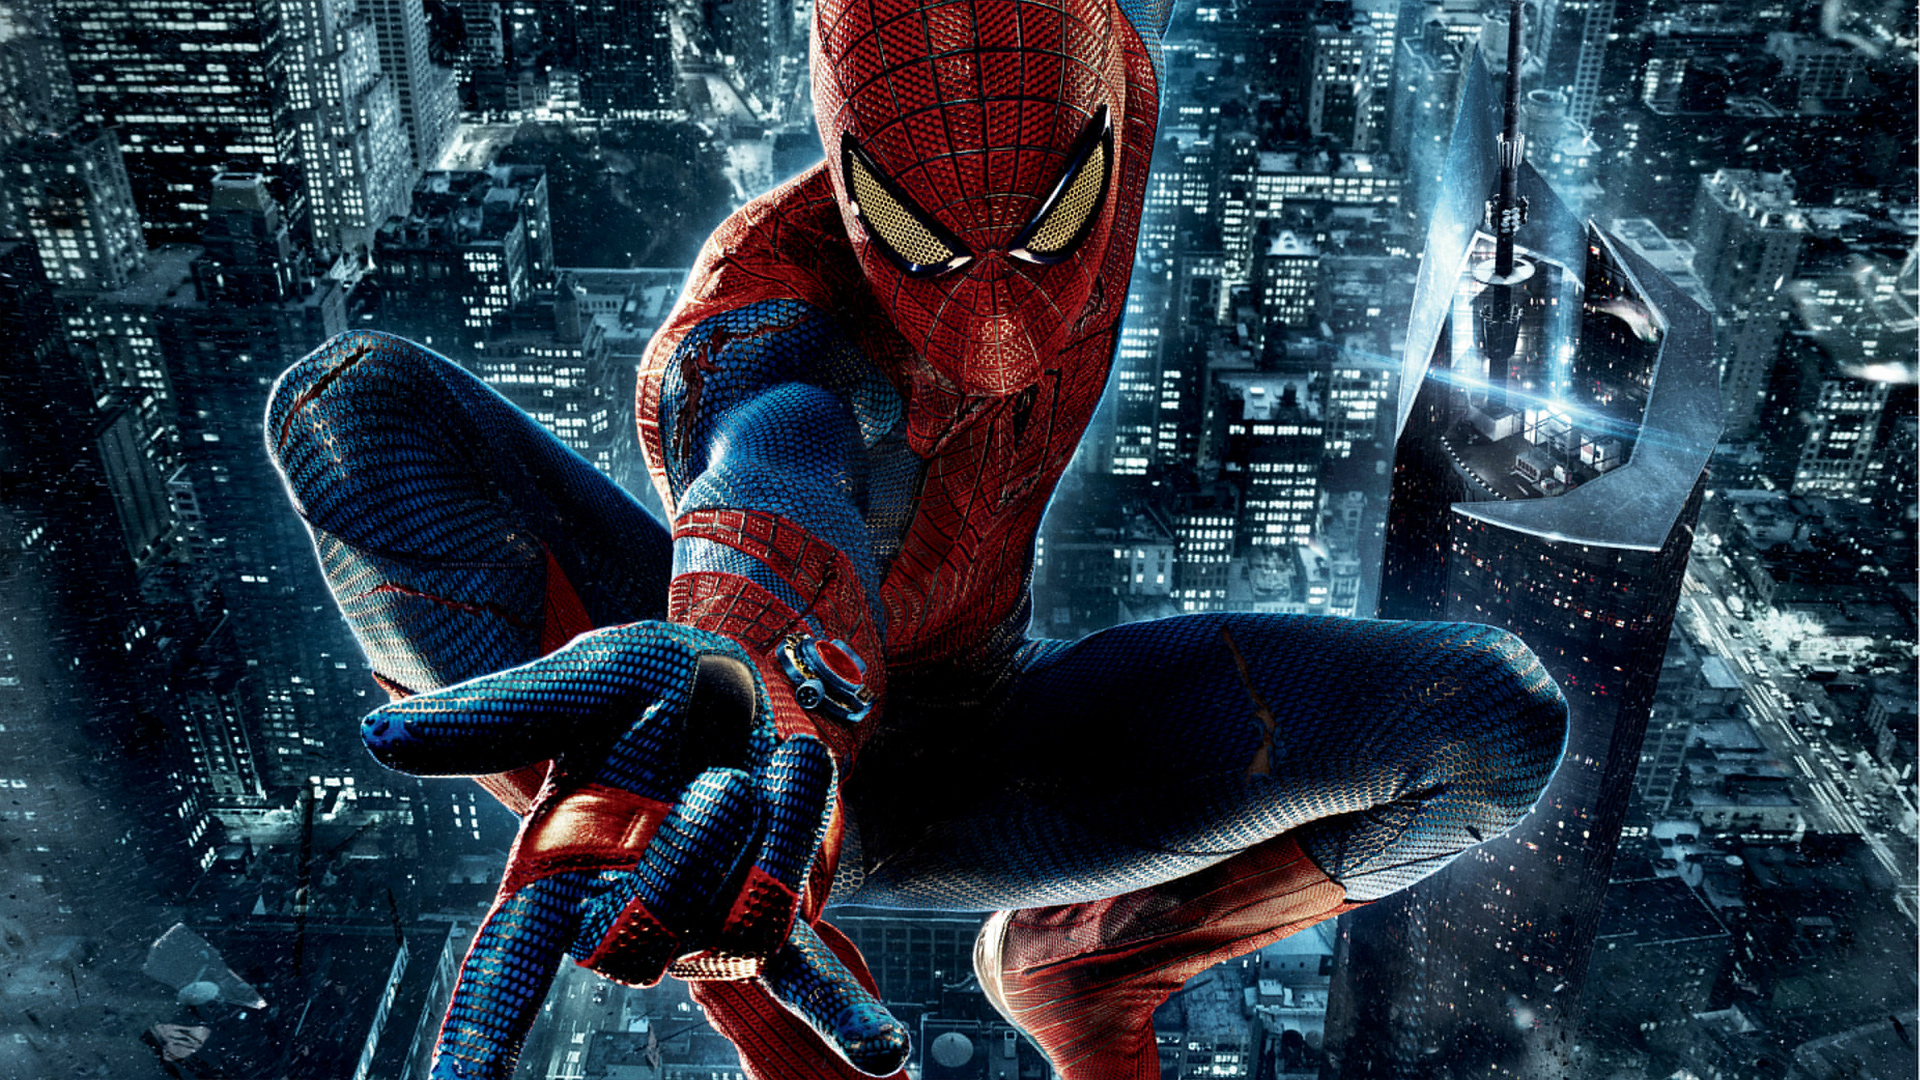 Spiderman 3d Wallpapers Group Amazing Spider Man 2012 107826